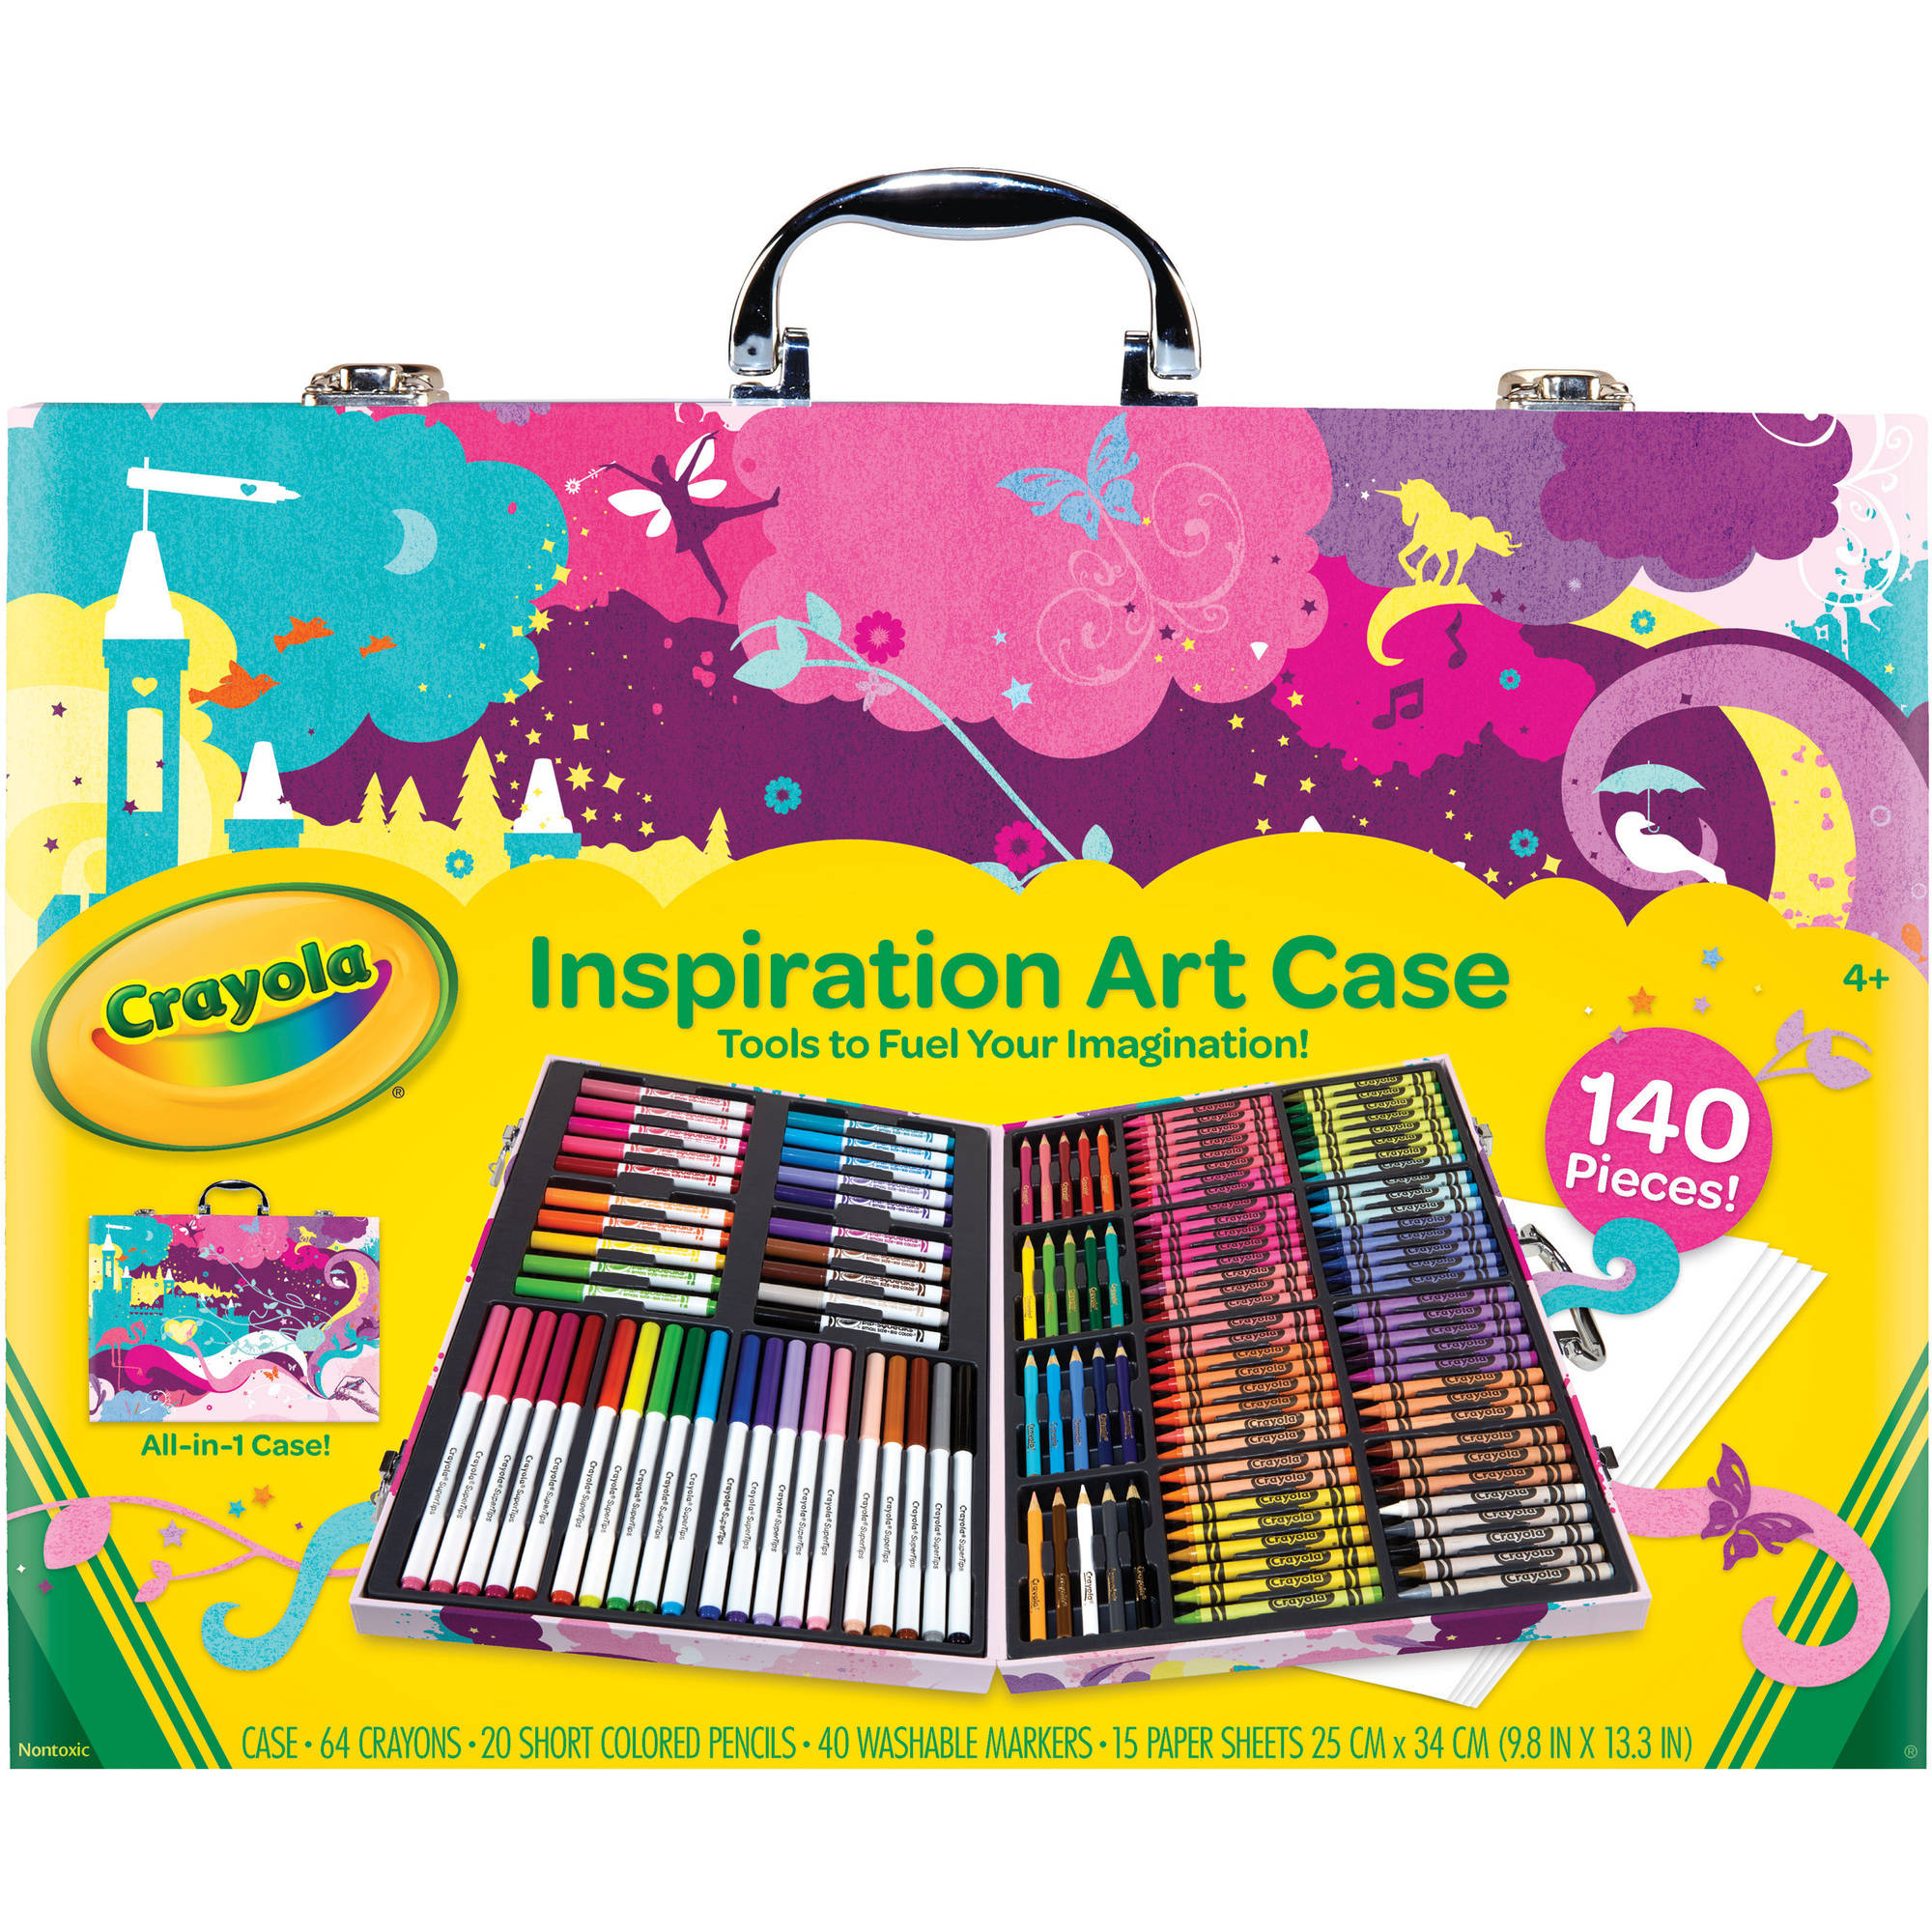 Crayola Inspiration Art Case with 140 Pieces, Pink